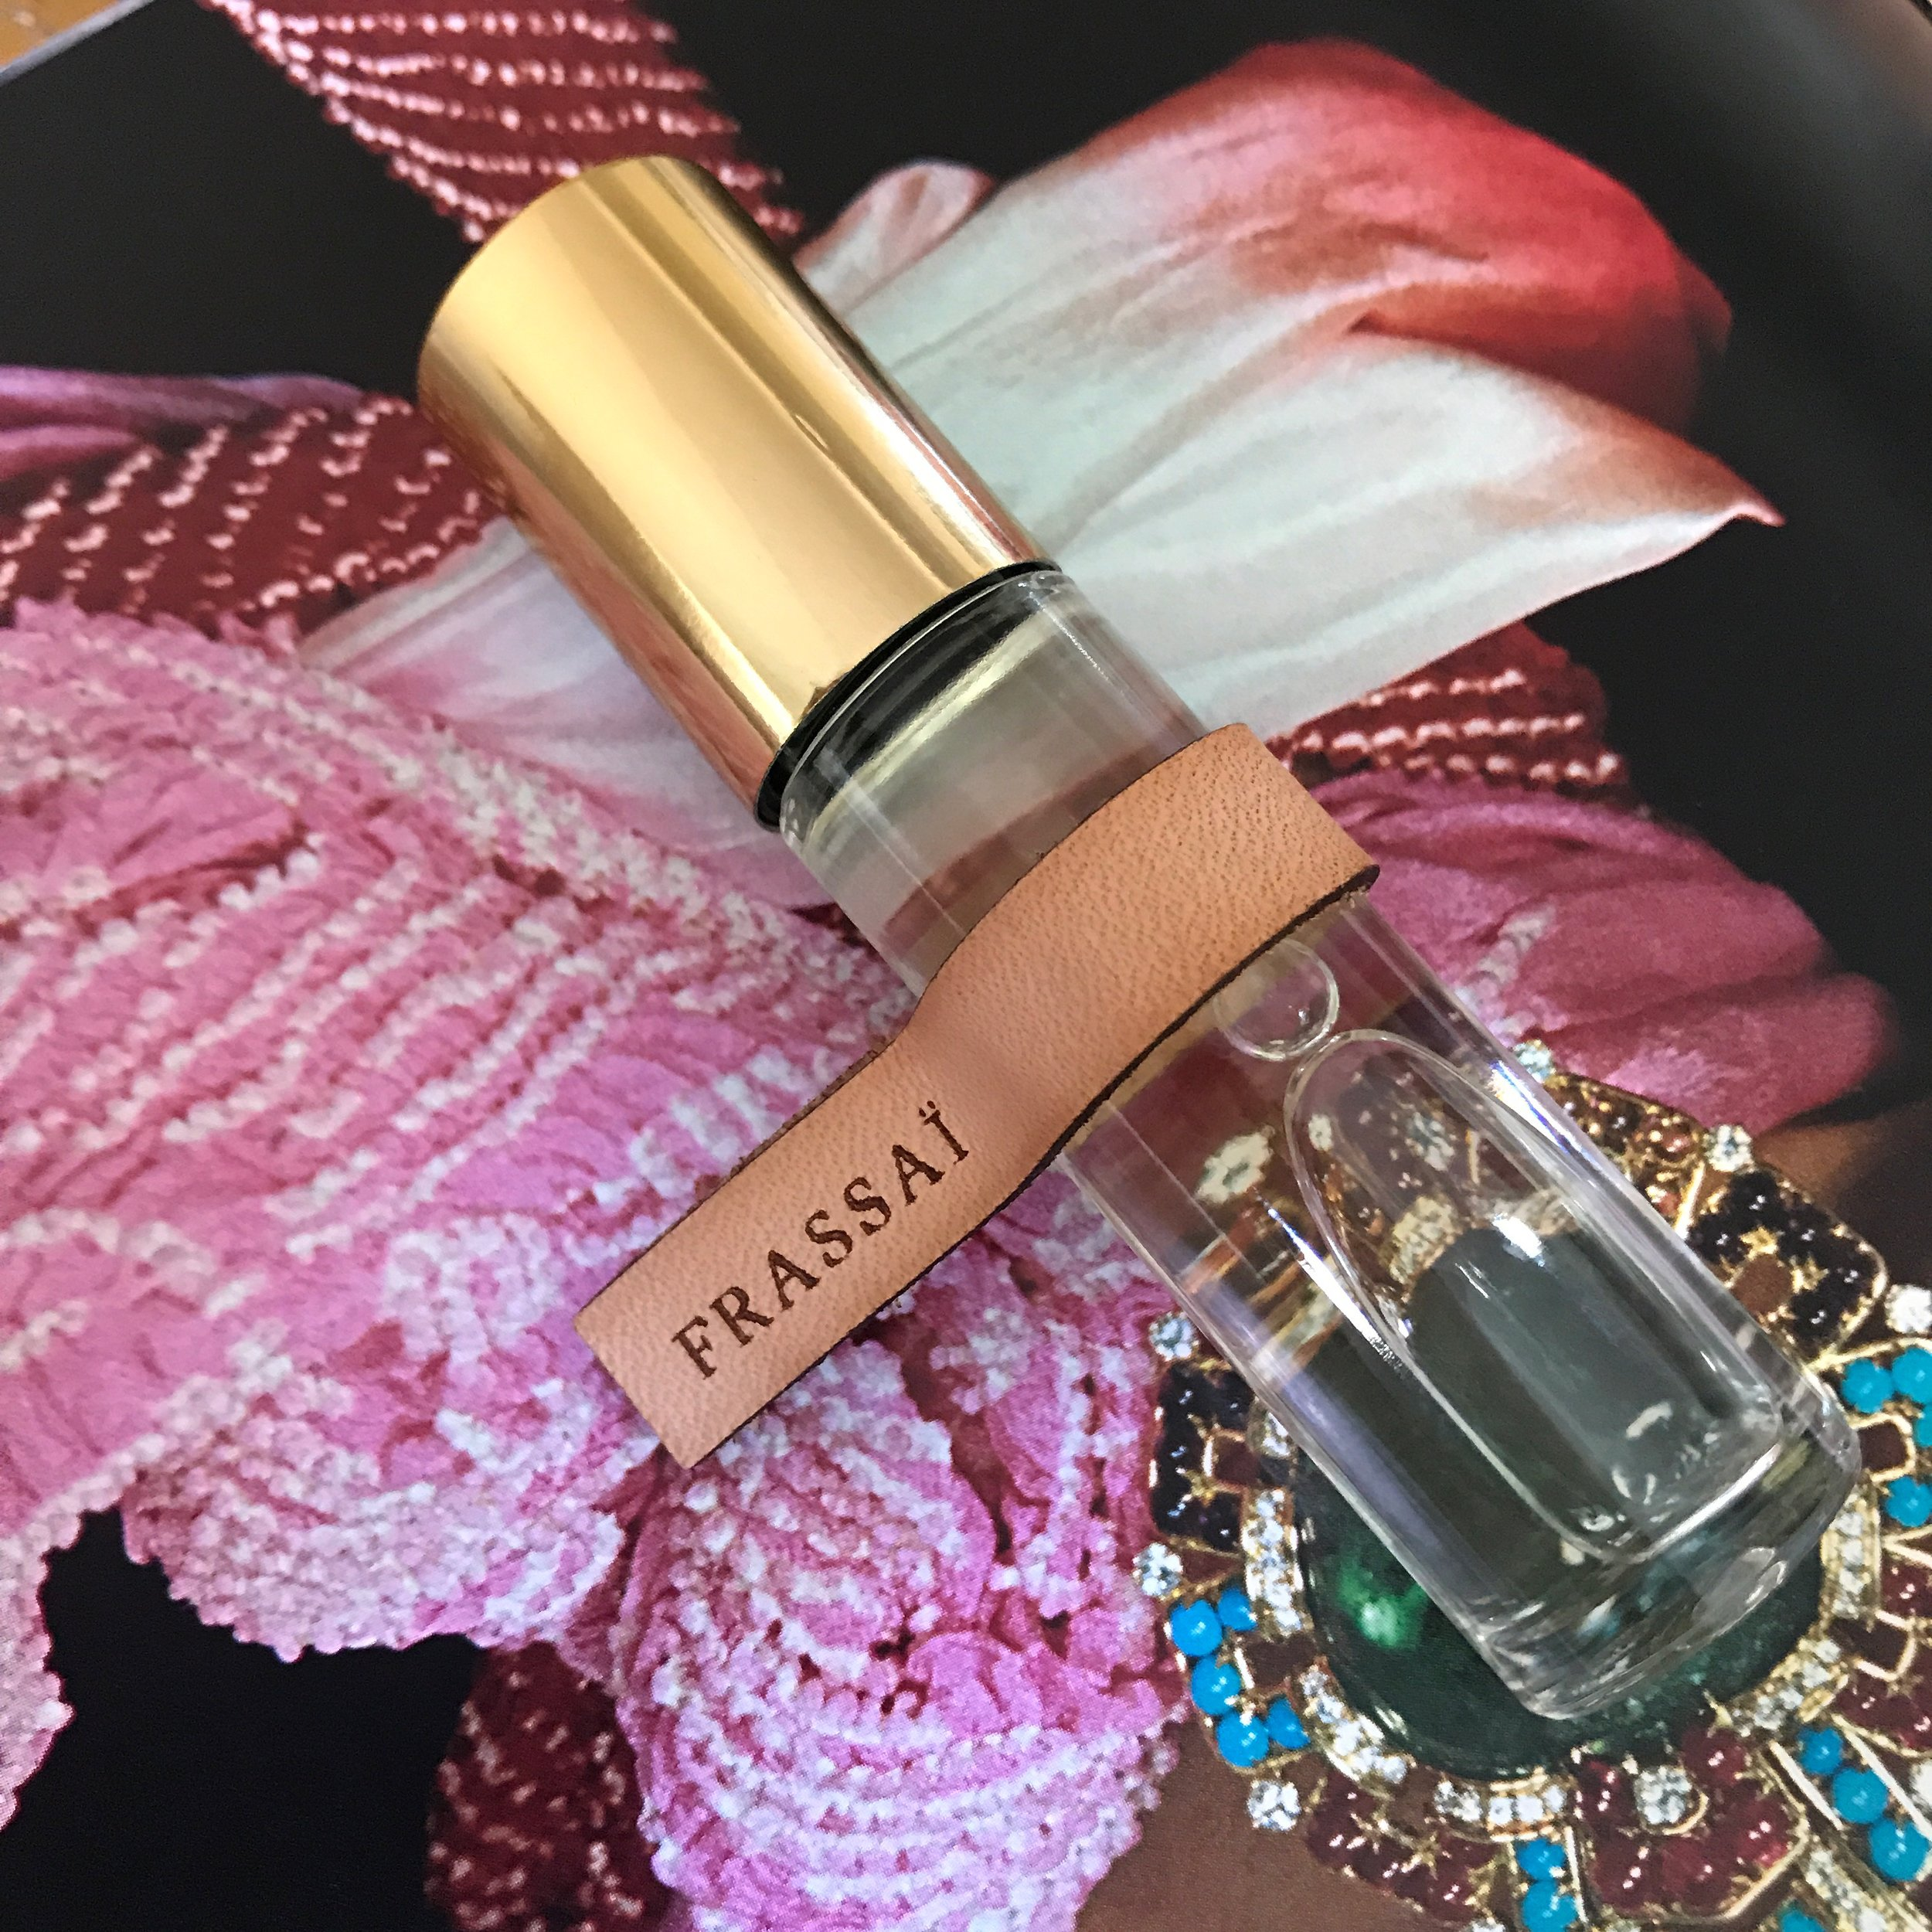 Blondine perfume by Frassai